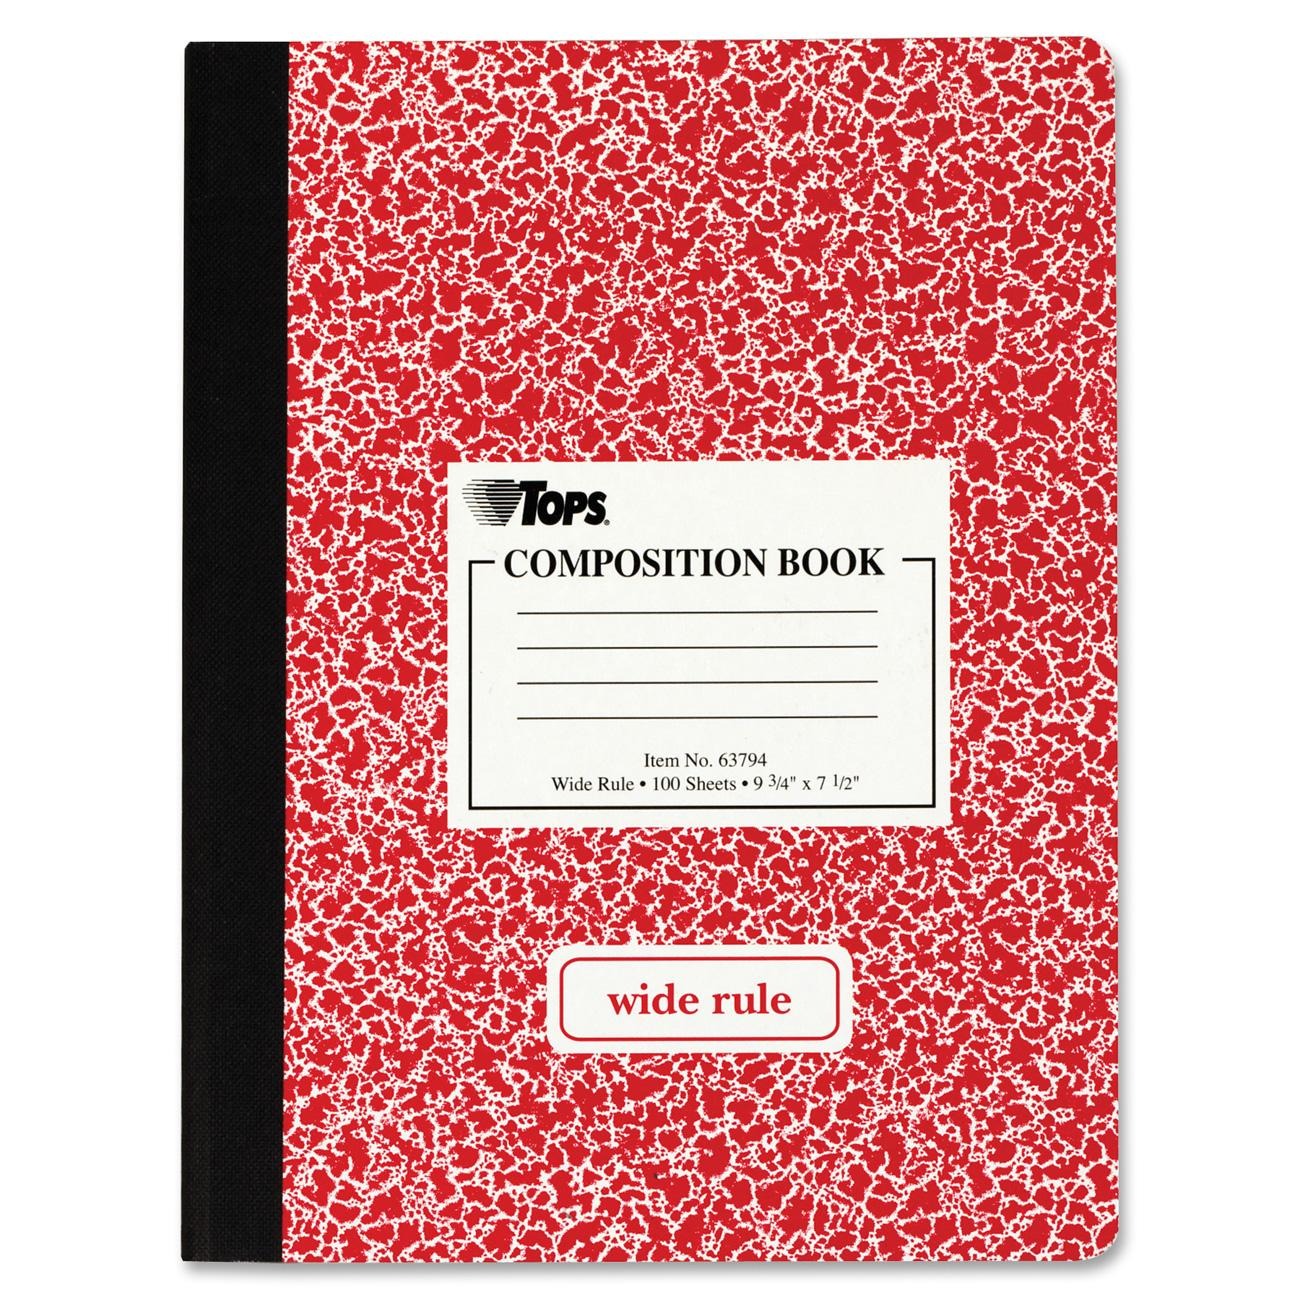 tops composition book, wide rule, 100 pages, assorted, (63794